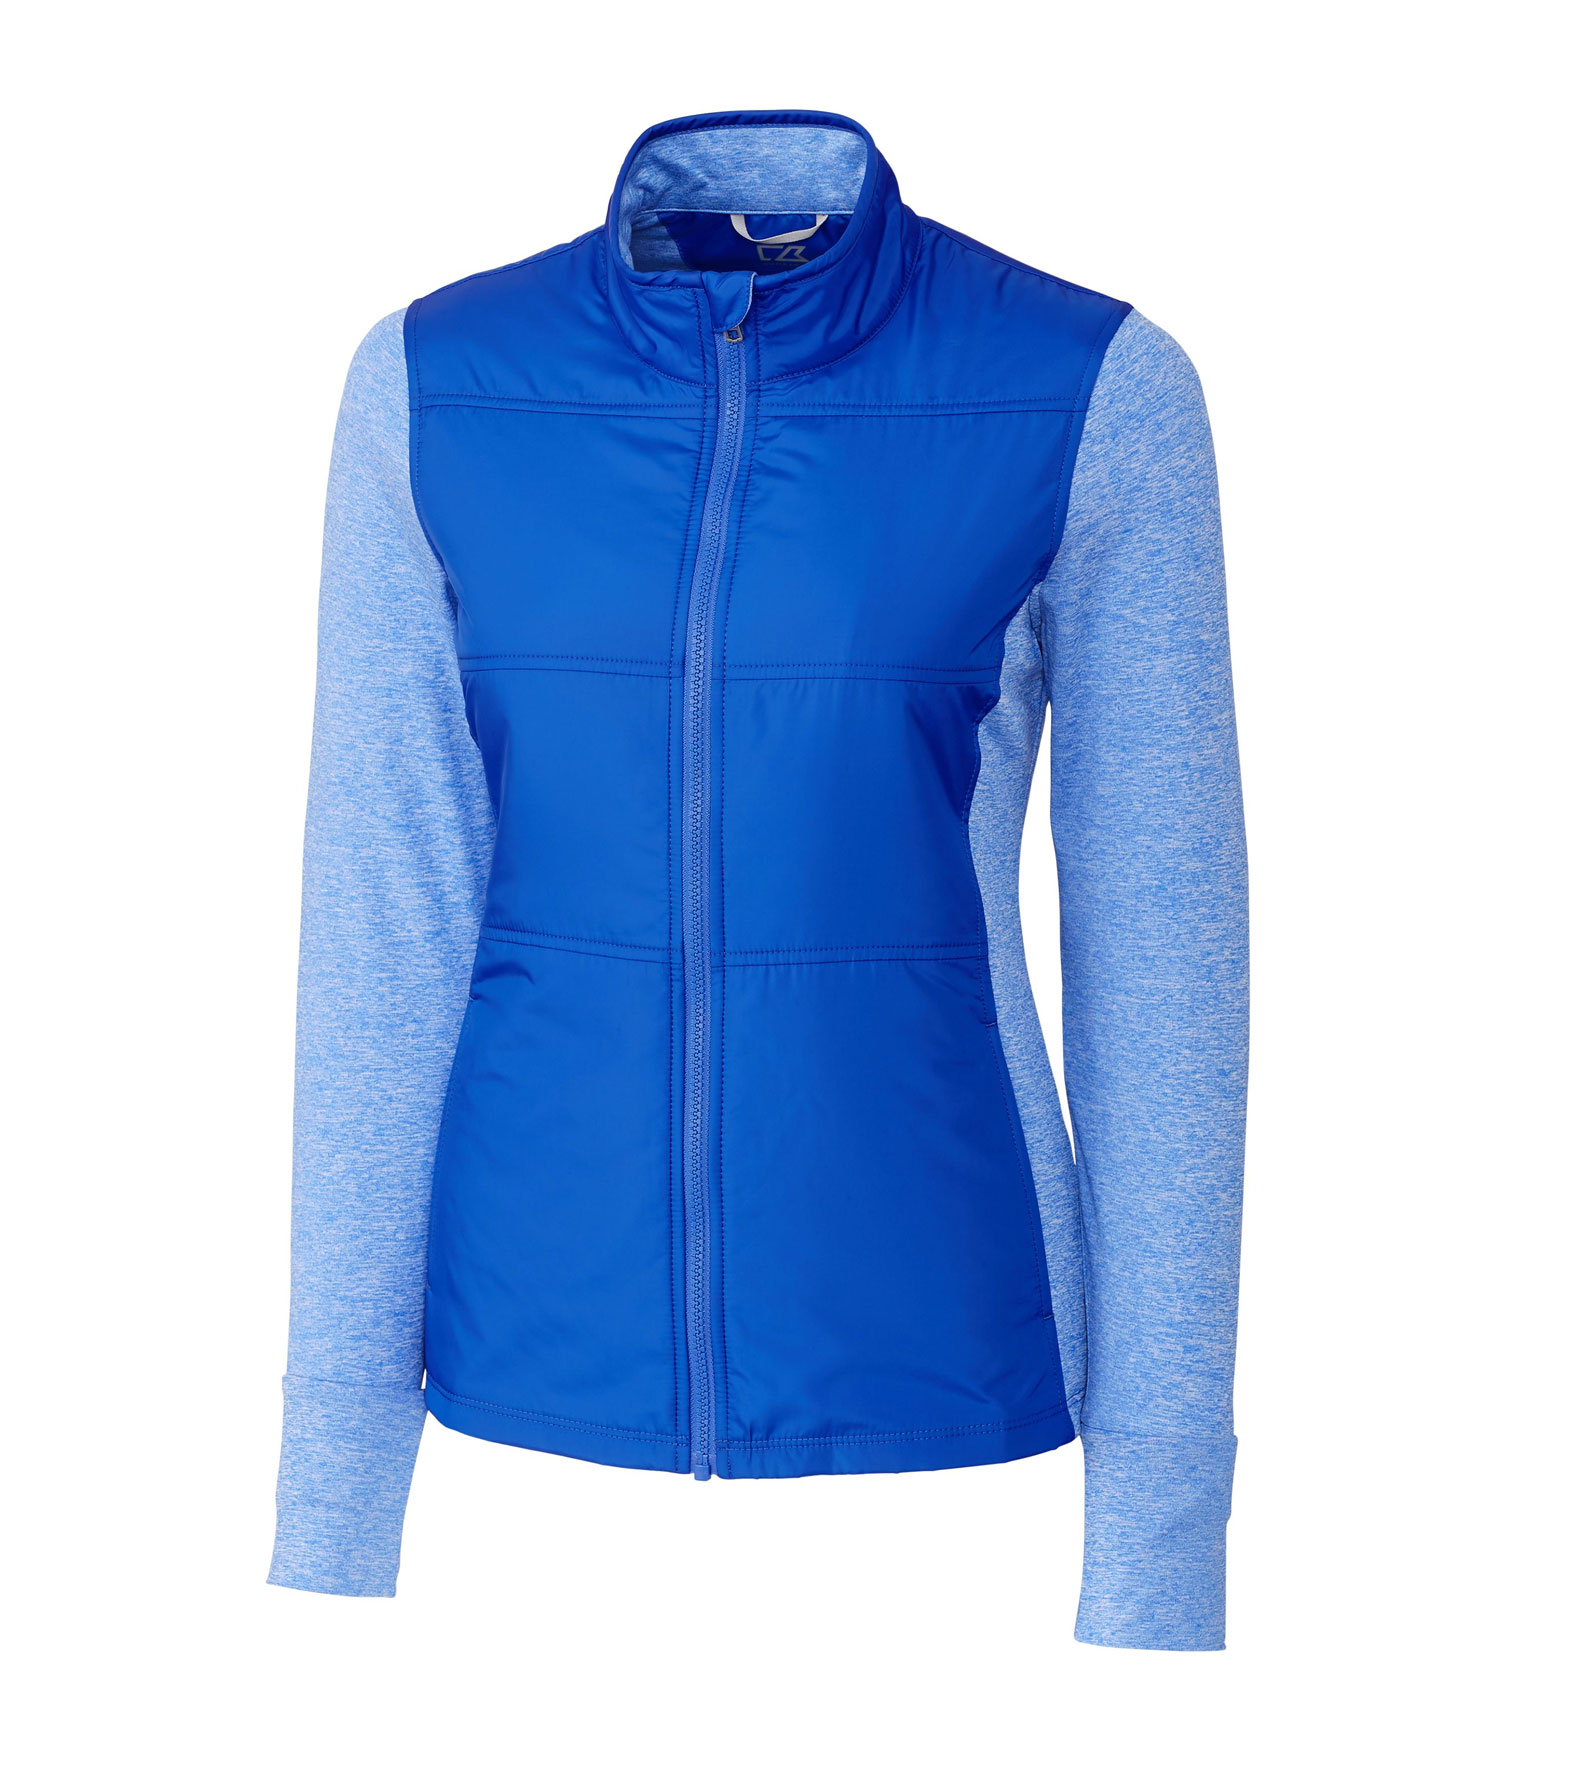 Ladies Stealth Full Zip Jacket